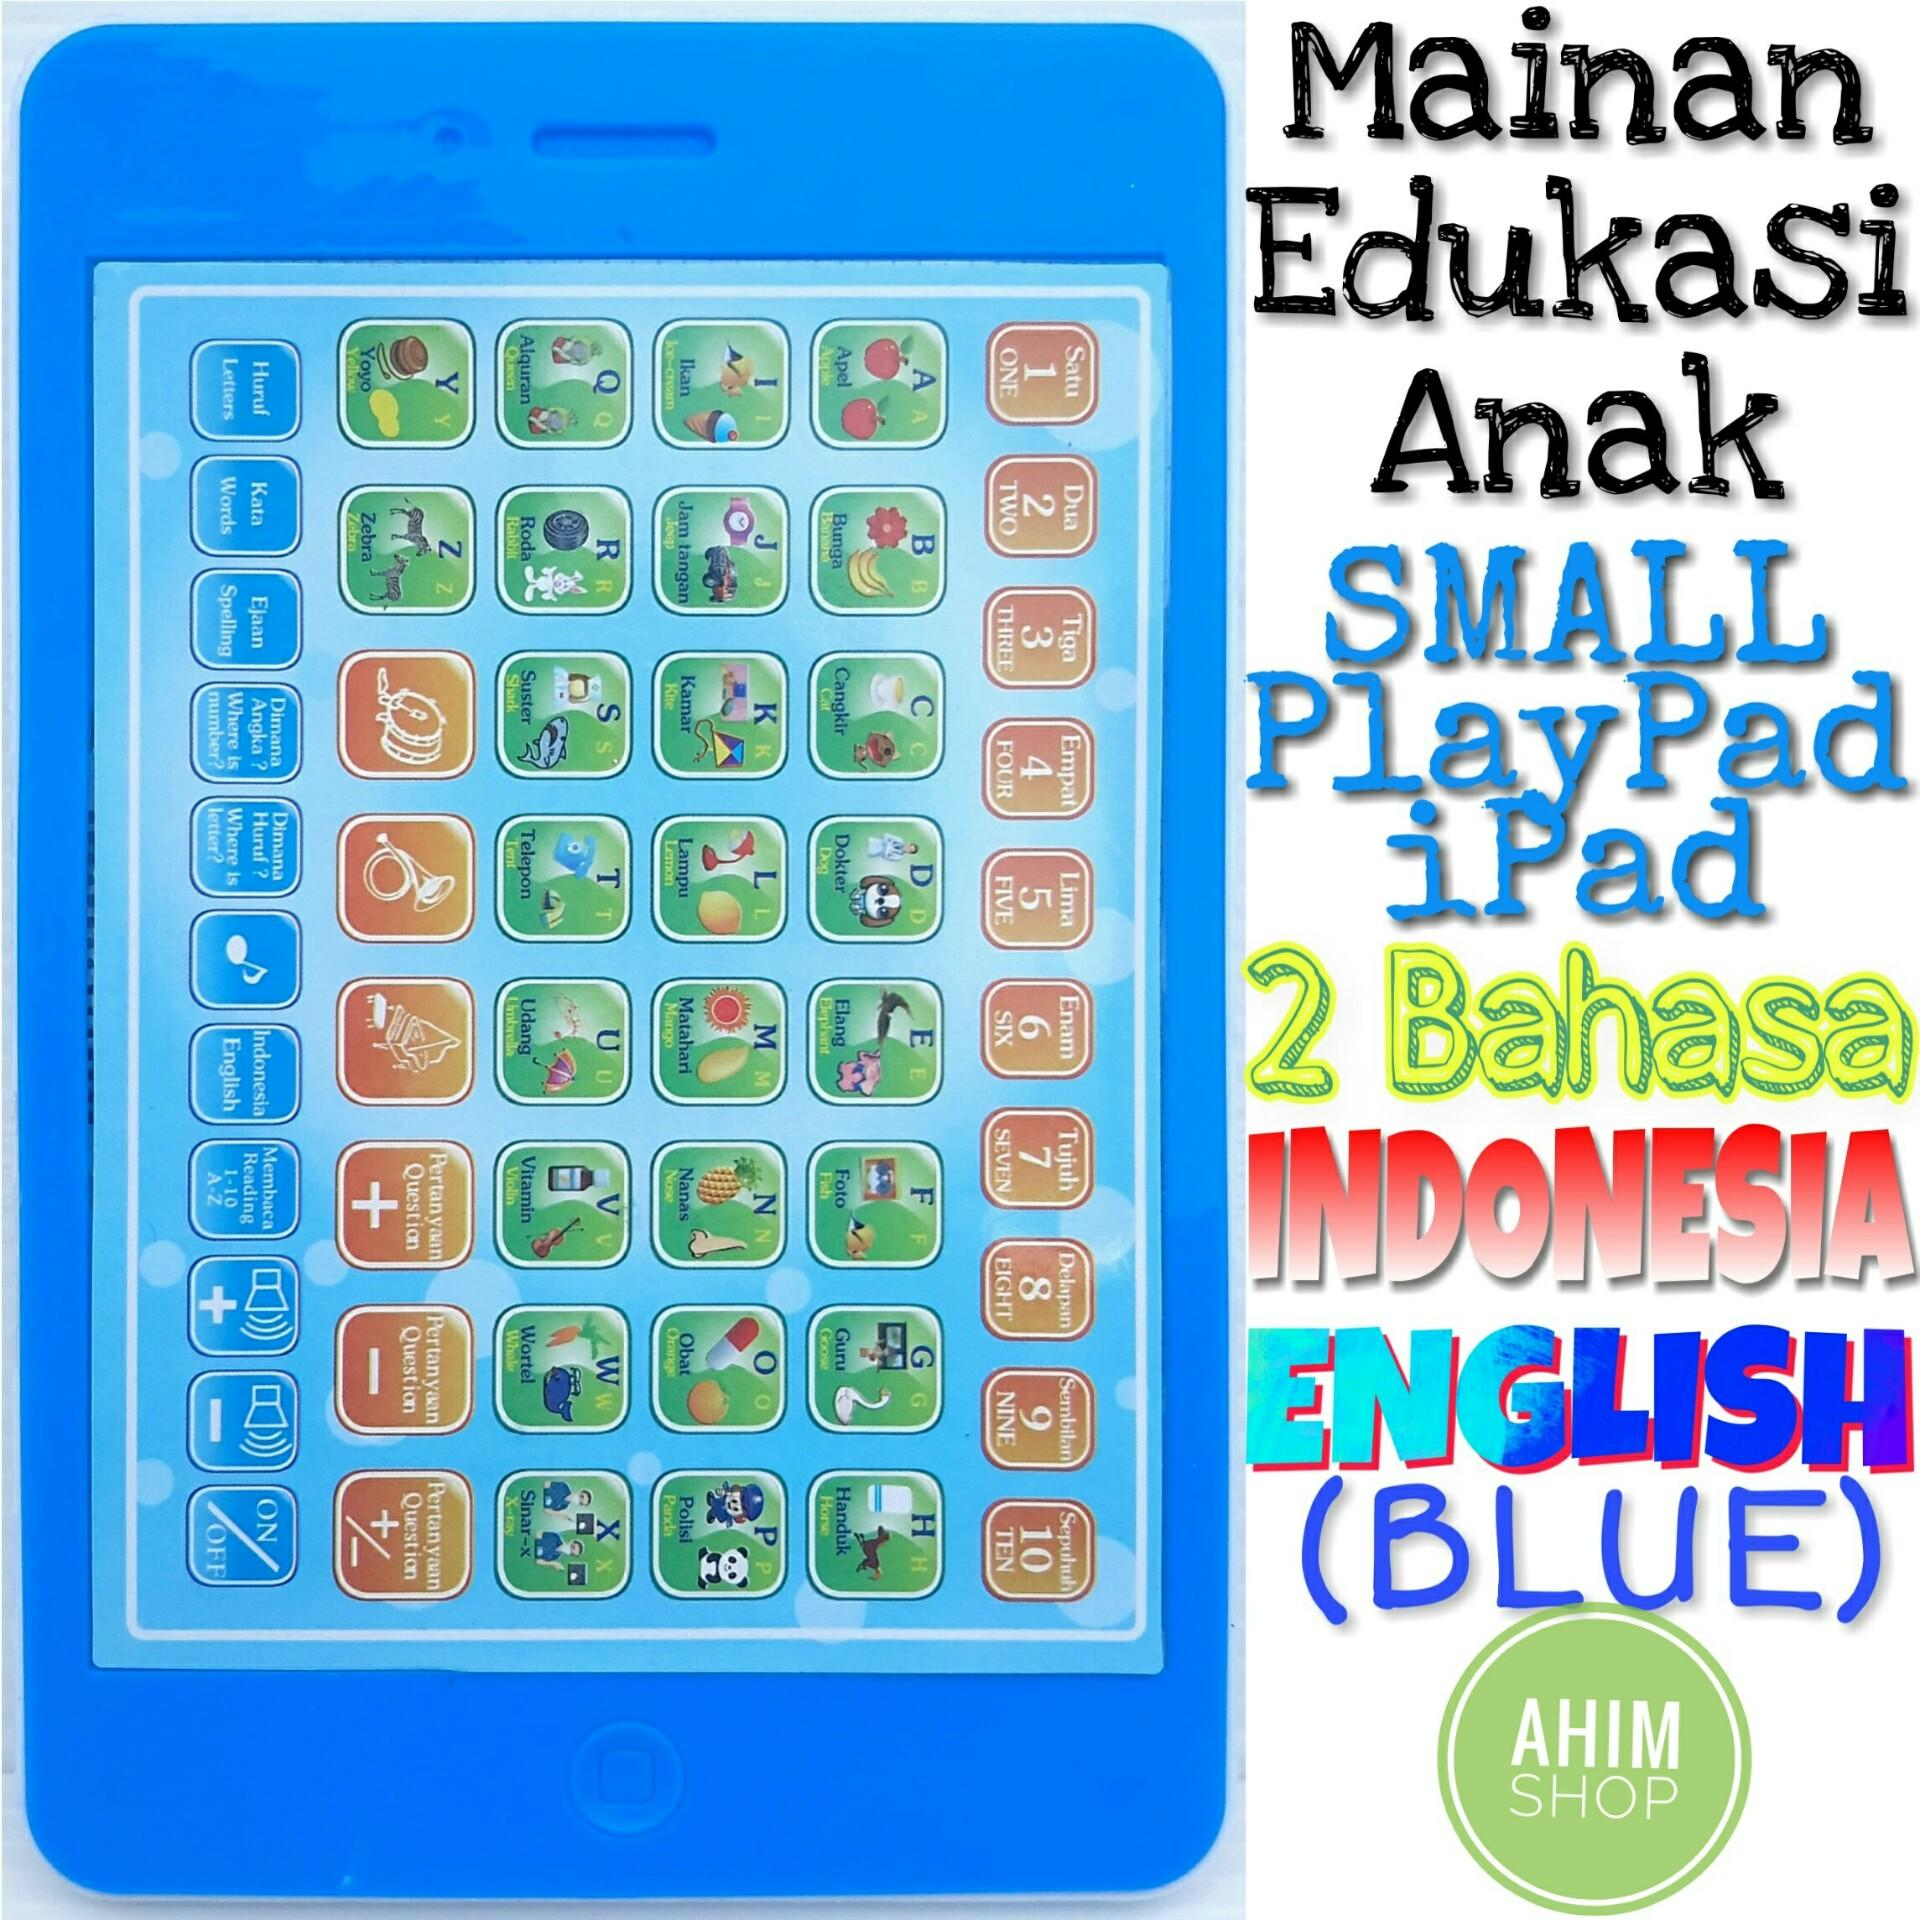 (Blue) Mainan Edukasi Anak 18 Fungsi SMALL PlayPad iPad 2 Bahasa (Indonesia–